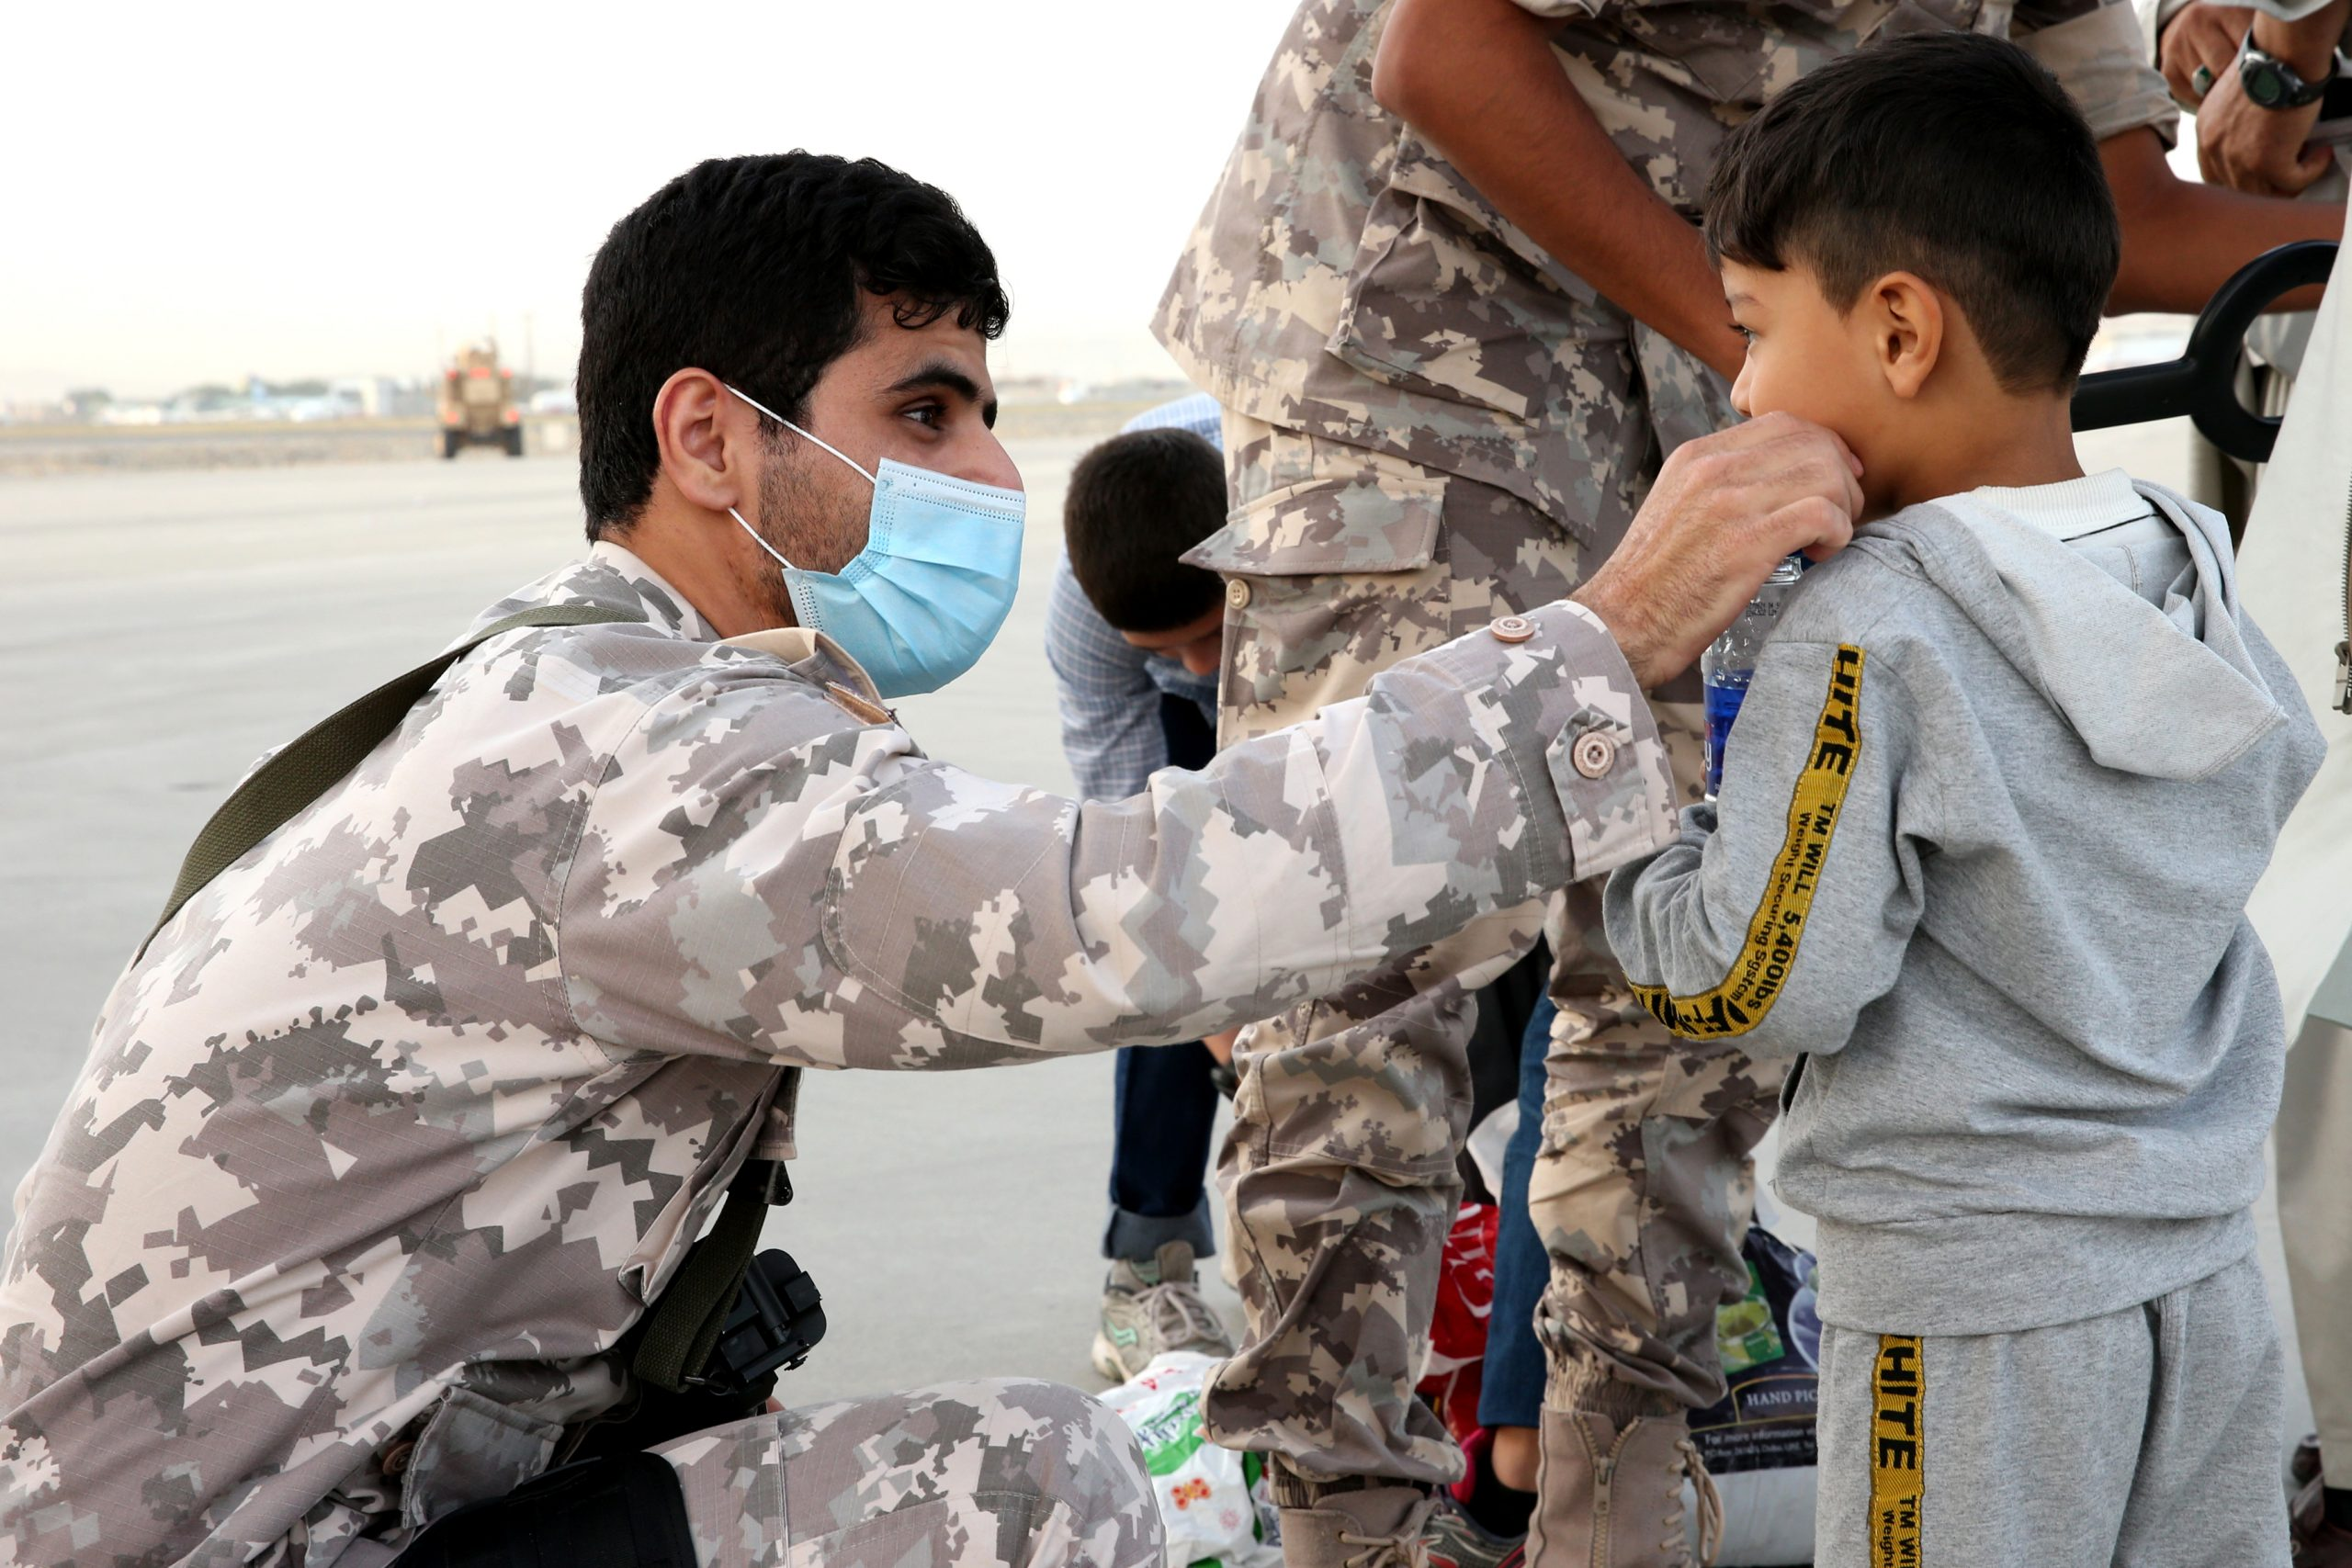 Amiri Air Force has evacuated Afghan citizens, students, foreign diplomats and journalists peacefully